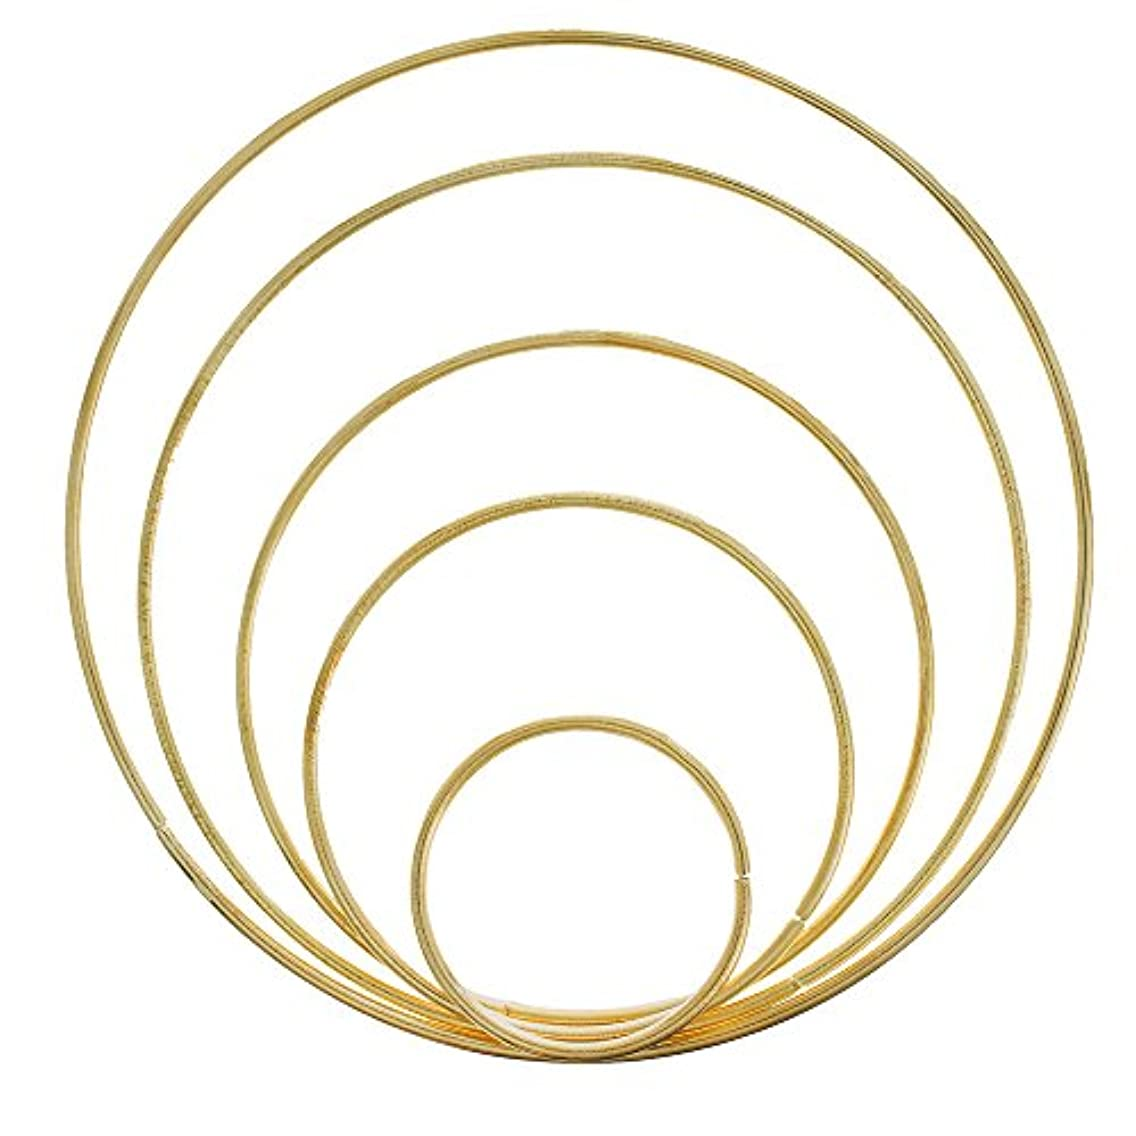 PARACORD PLANET Metal Ring Hoops – Macramé Rings for Dreamcatchers and Other Crafts – 5 Pieces Gold, 5 Inch